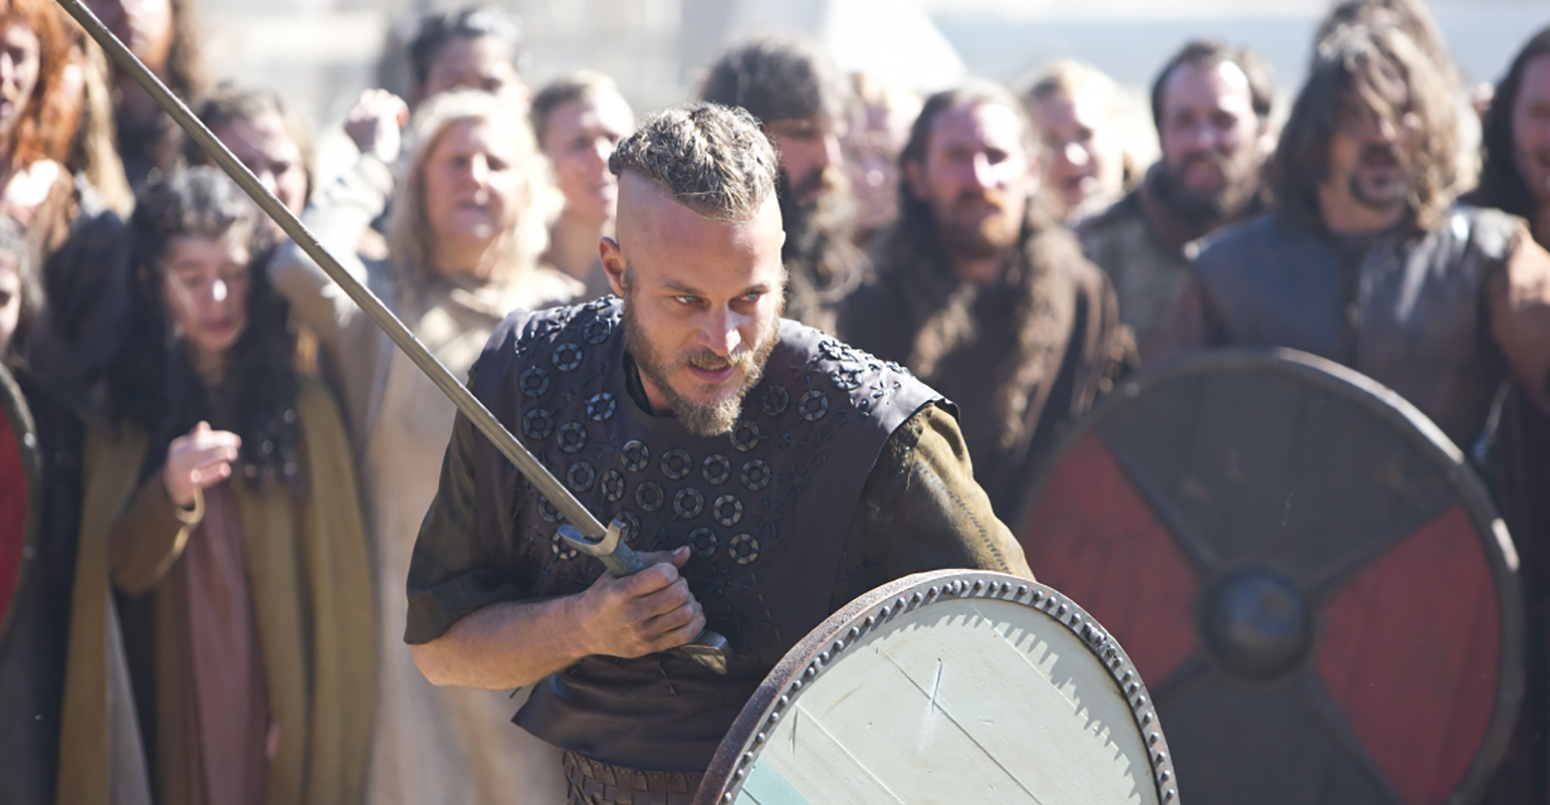 A scene from Vikings. (Credit: Jonathan Hession/History Channel)